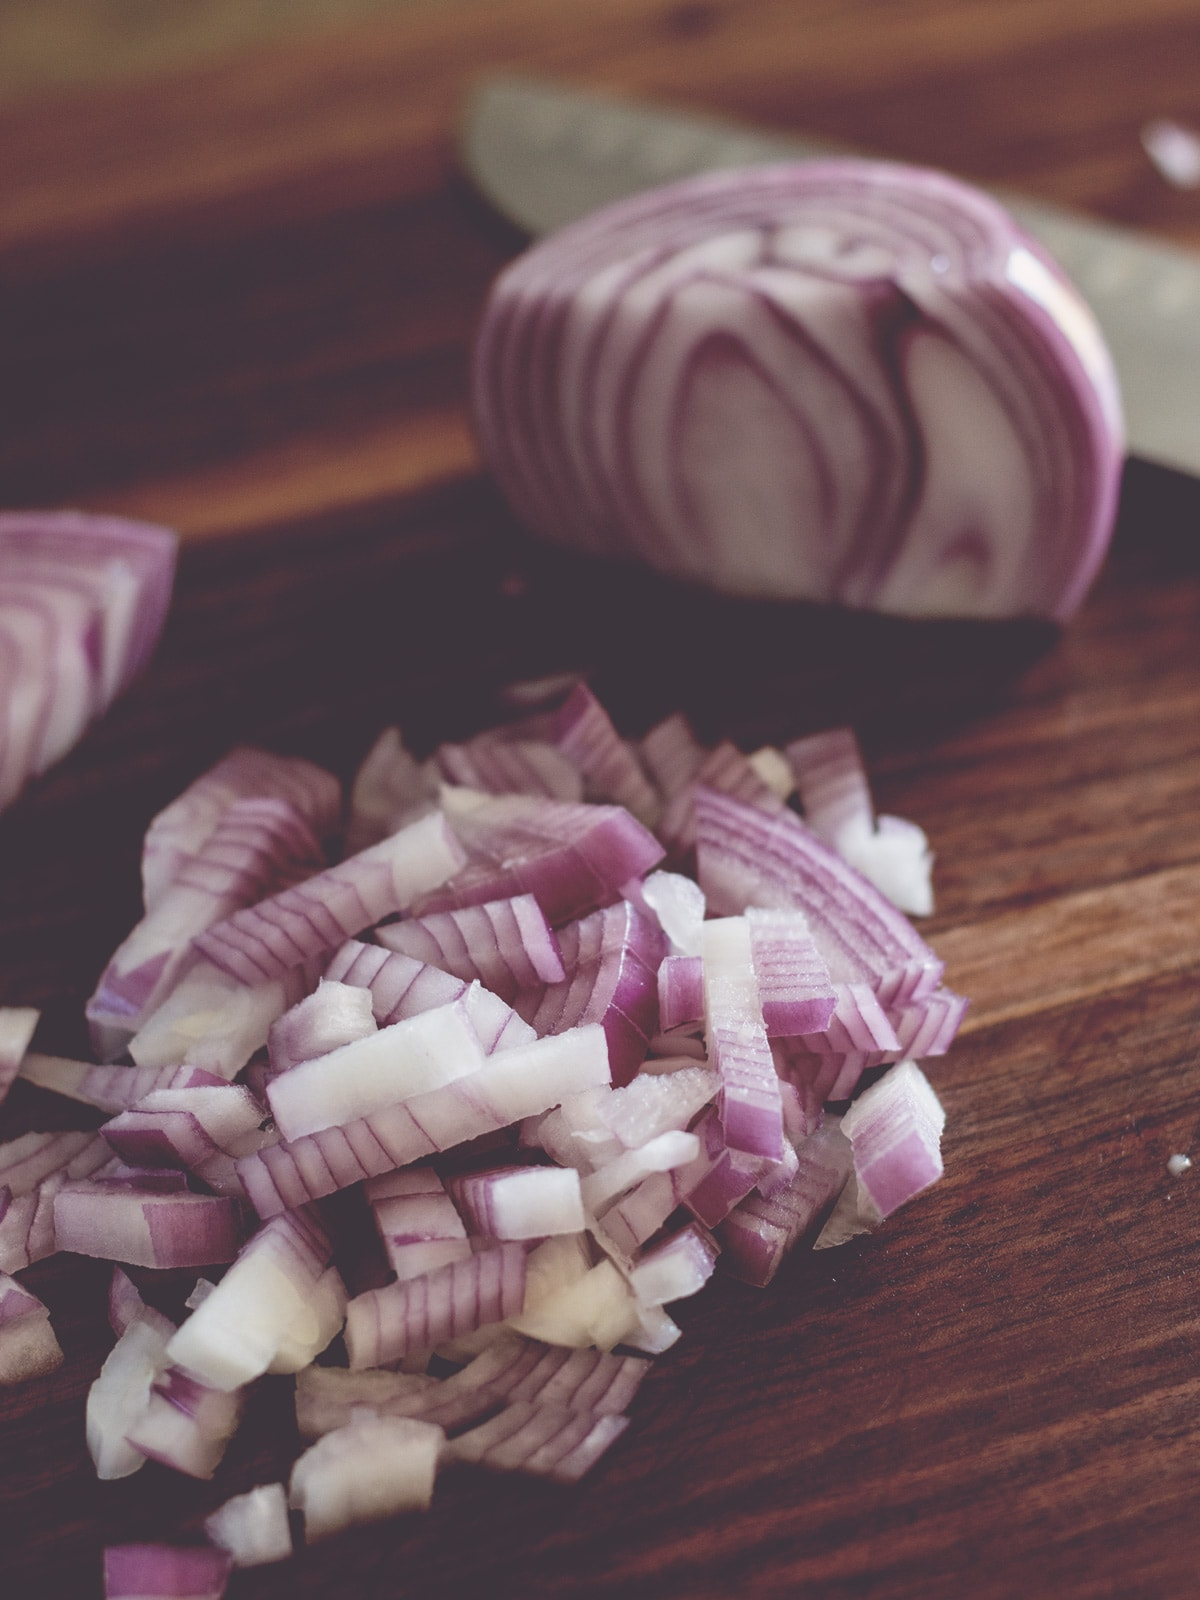 diced red onions on cutting board